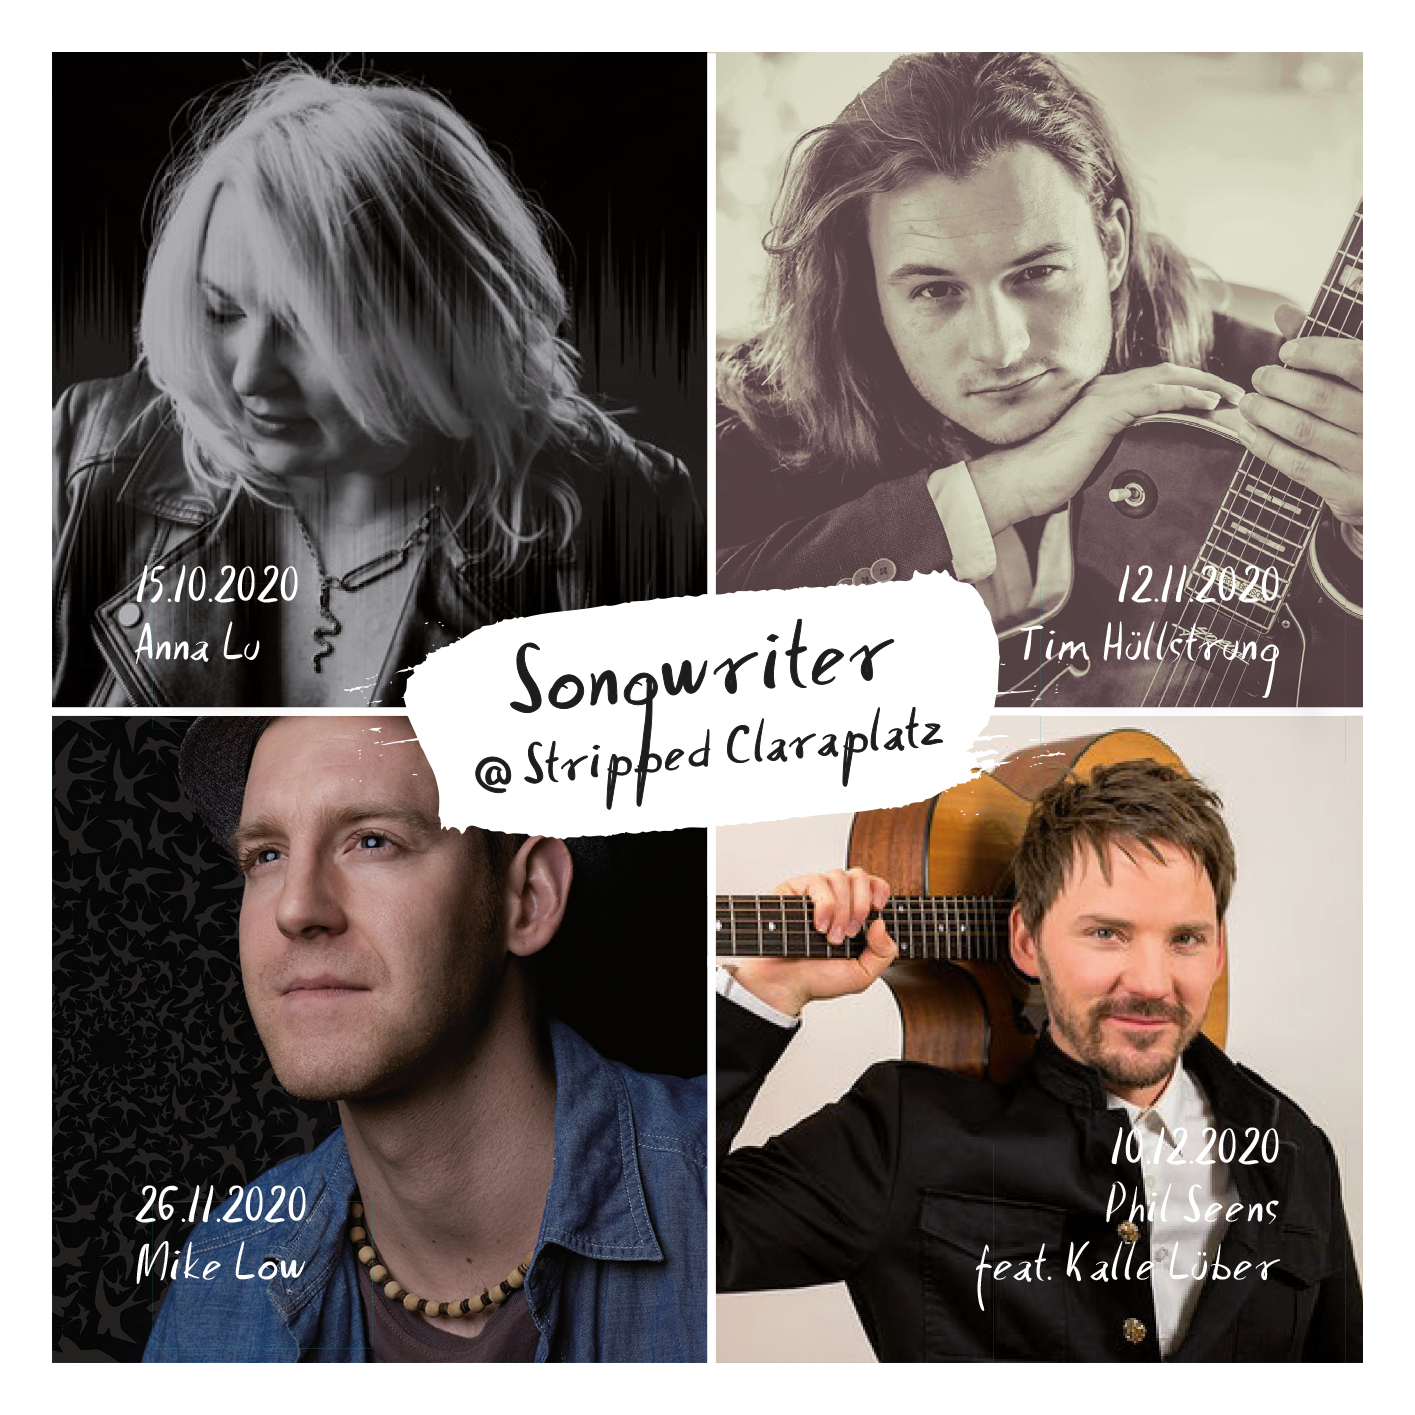 20201002_Songwriter_Event_105x105mm_RZ-high-1png